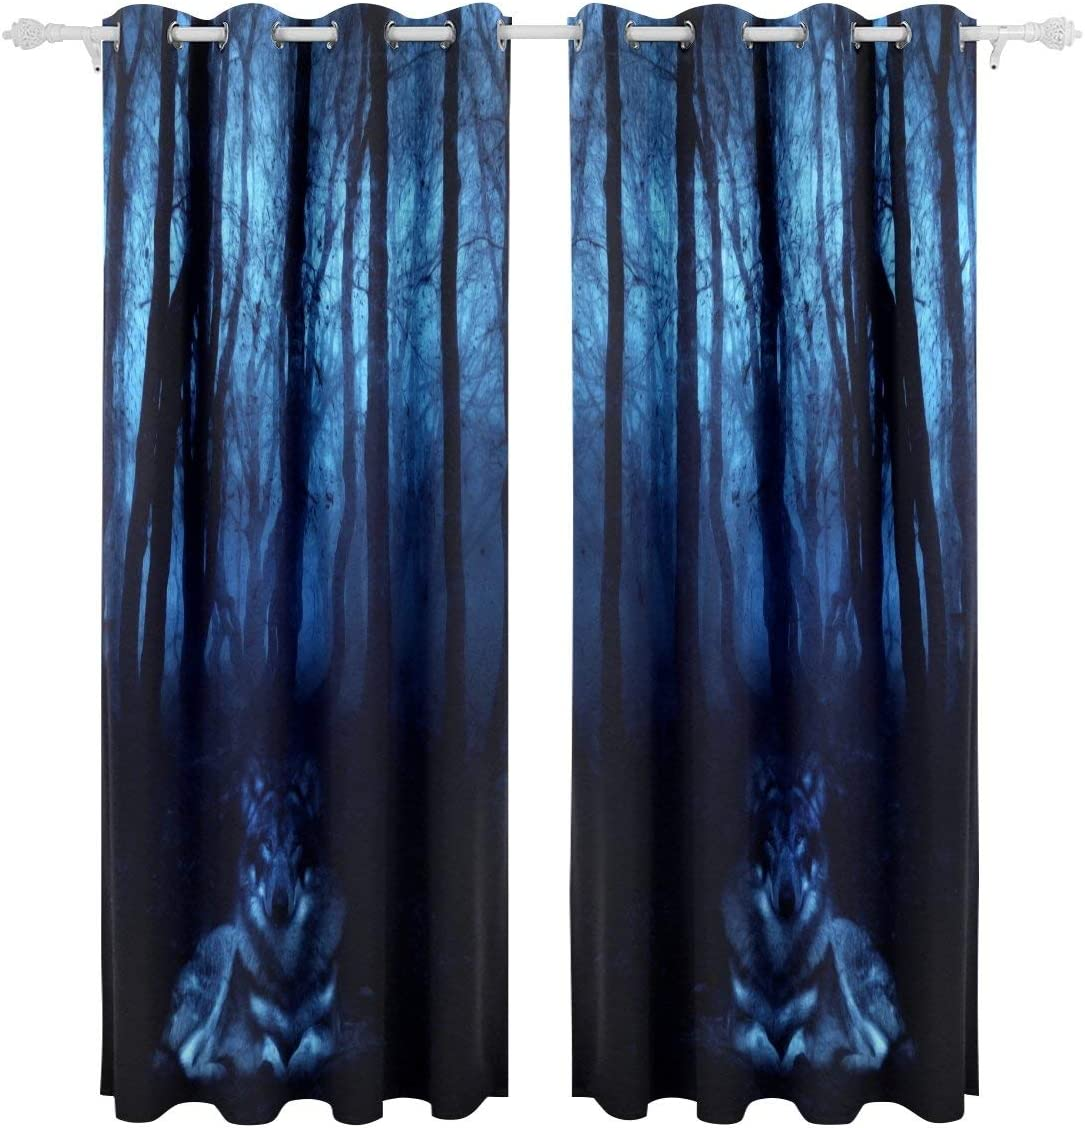 ALAZA Living Room Window Curtain Blue Night Mystical Wolf in Scary Forest Curtains Blackout 84 Inch Length 2 Panels for Kids Children Decorative,84 by 55 In,Polyester,Block Out 80% Light